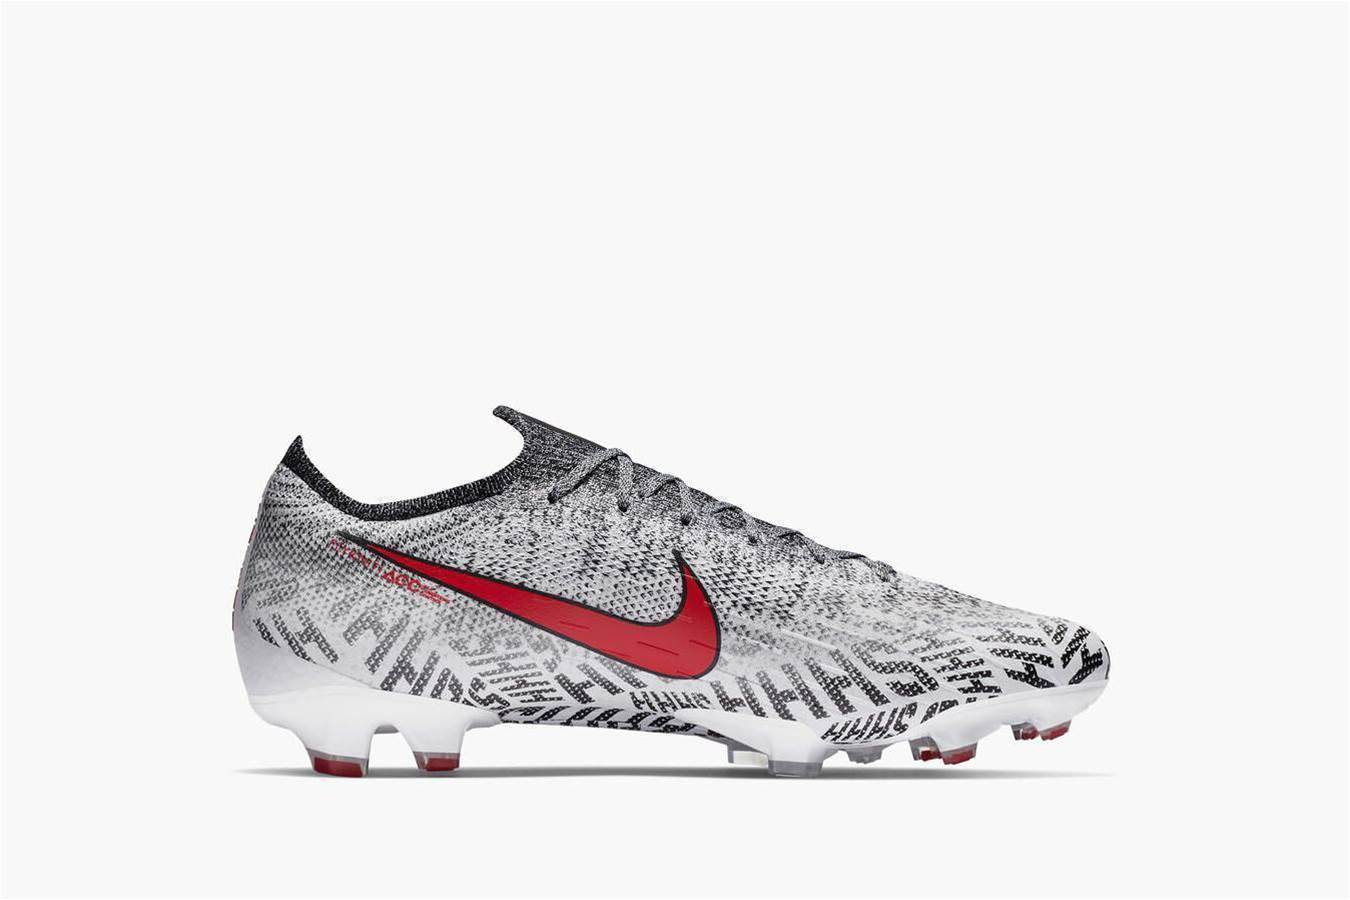 """buy online a3fbd cb2b2 Neymar Jr said of the boots  """"SHHH is not about me silencing the rest of  the world, it s about me going silent and focusing on what I have to do for  my ..."""